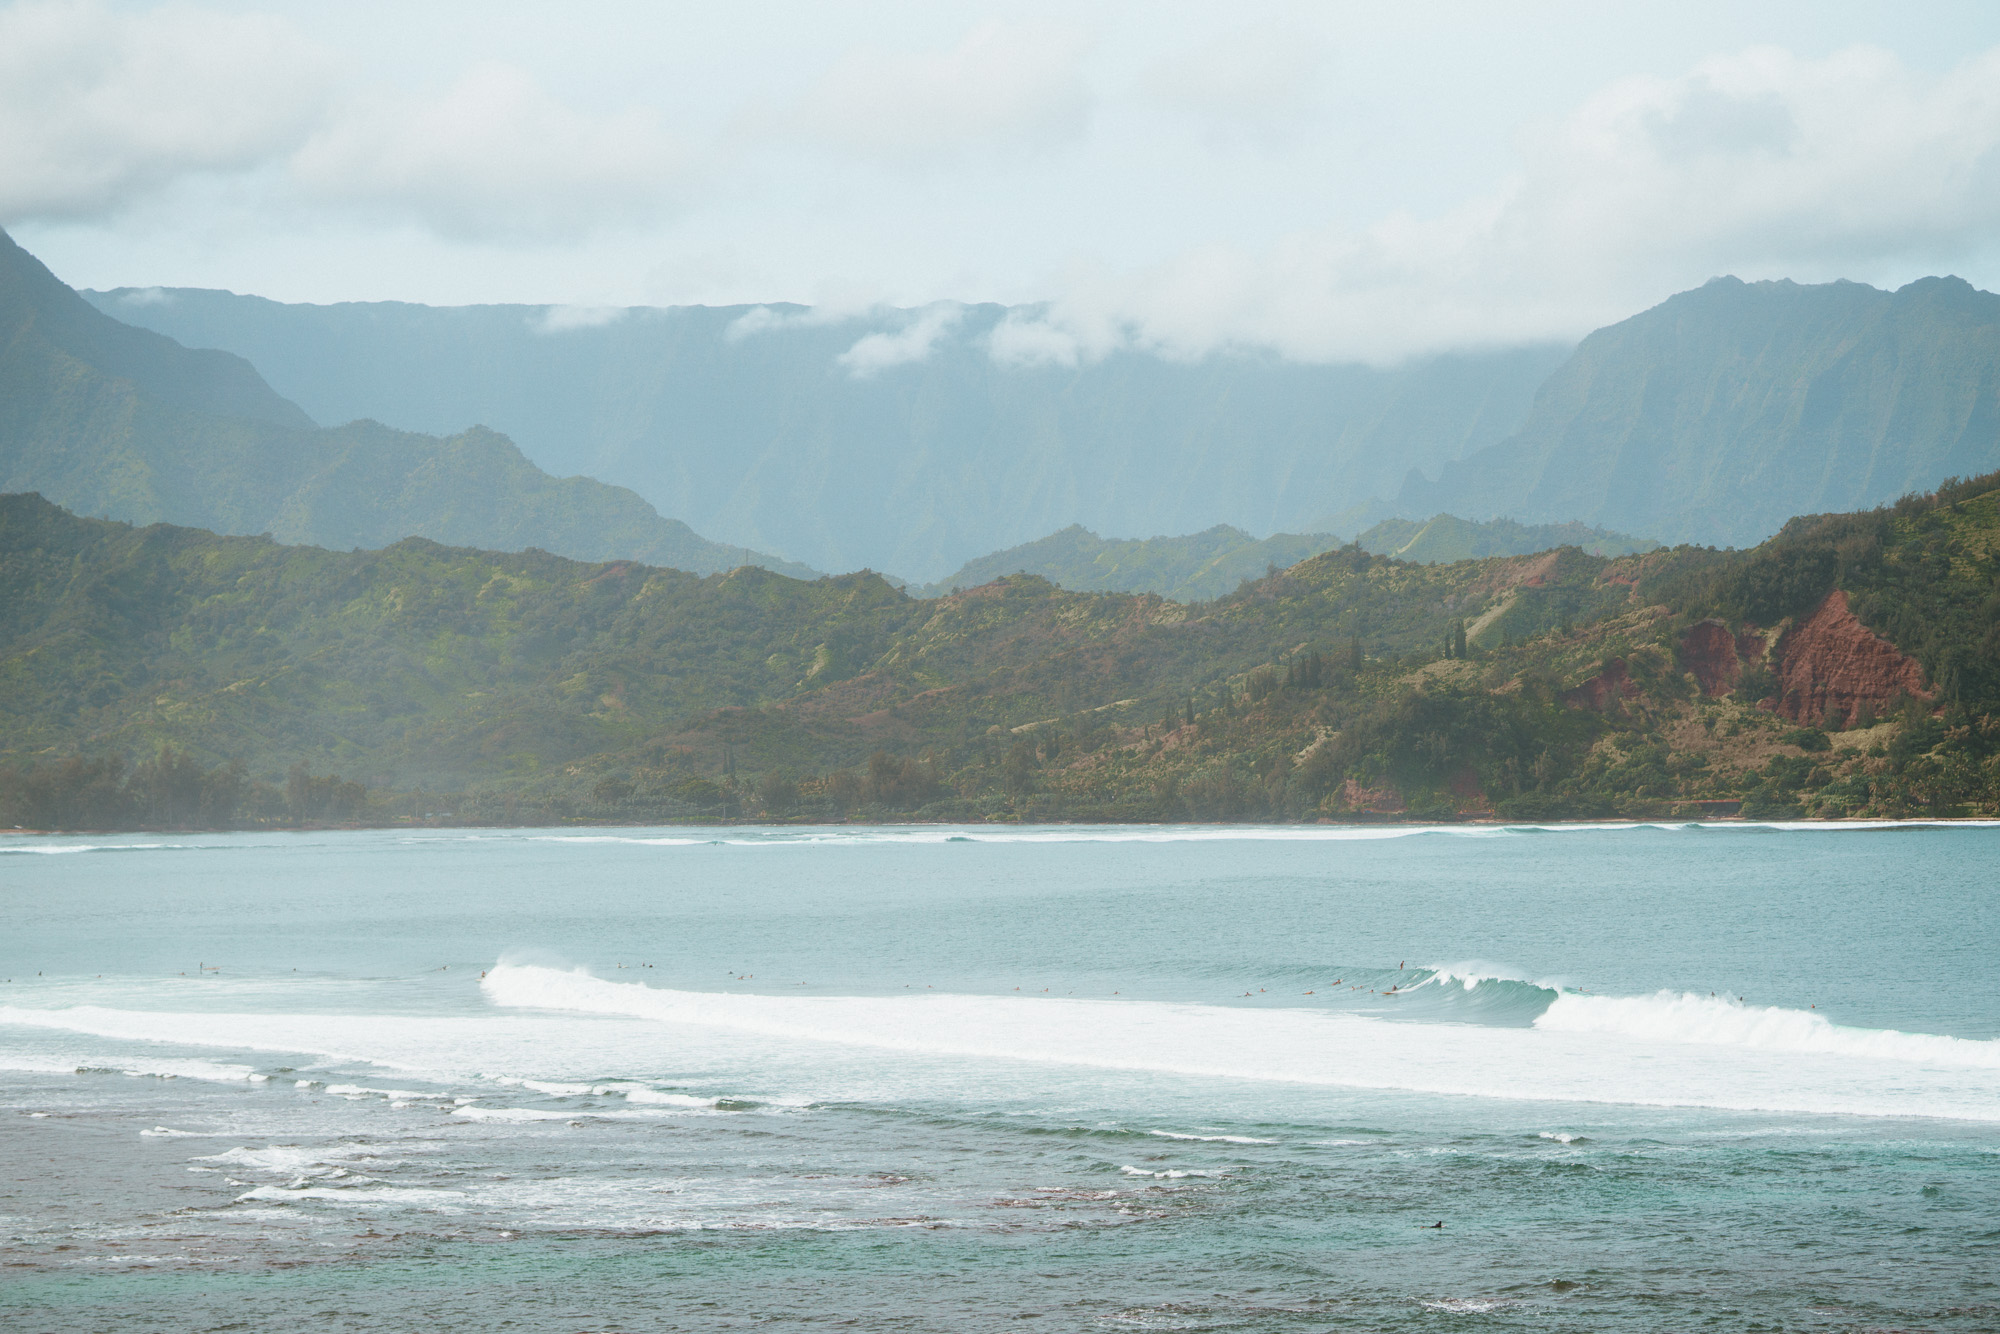 Hanalei Bay Beach in Kauai via @finduslost